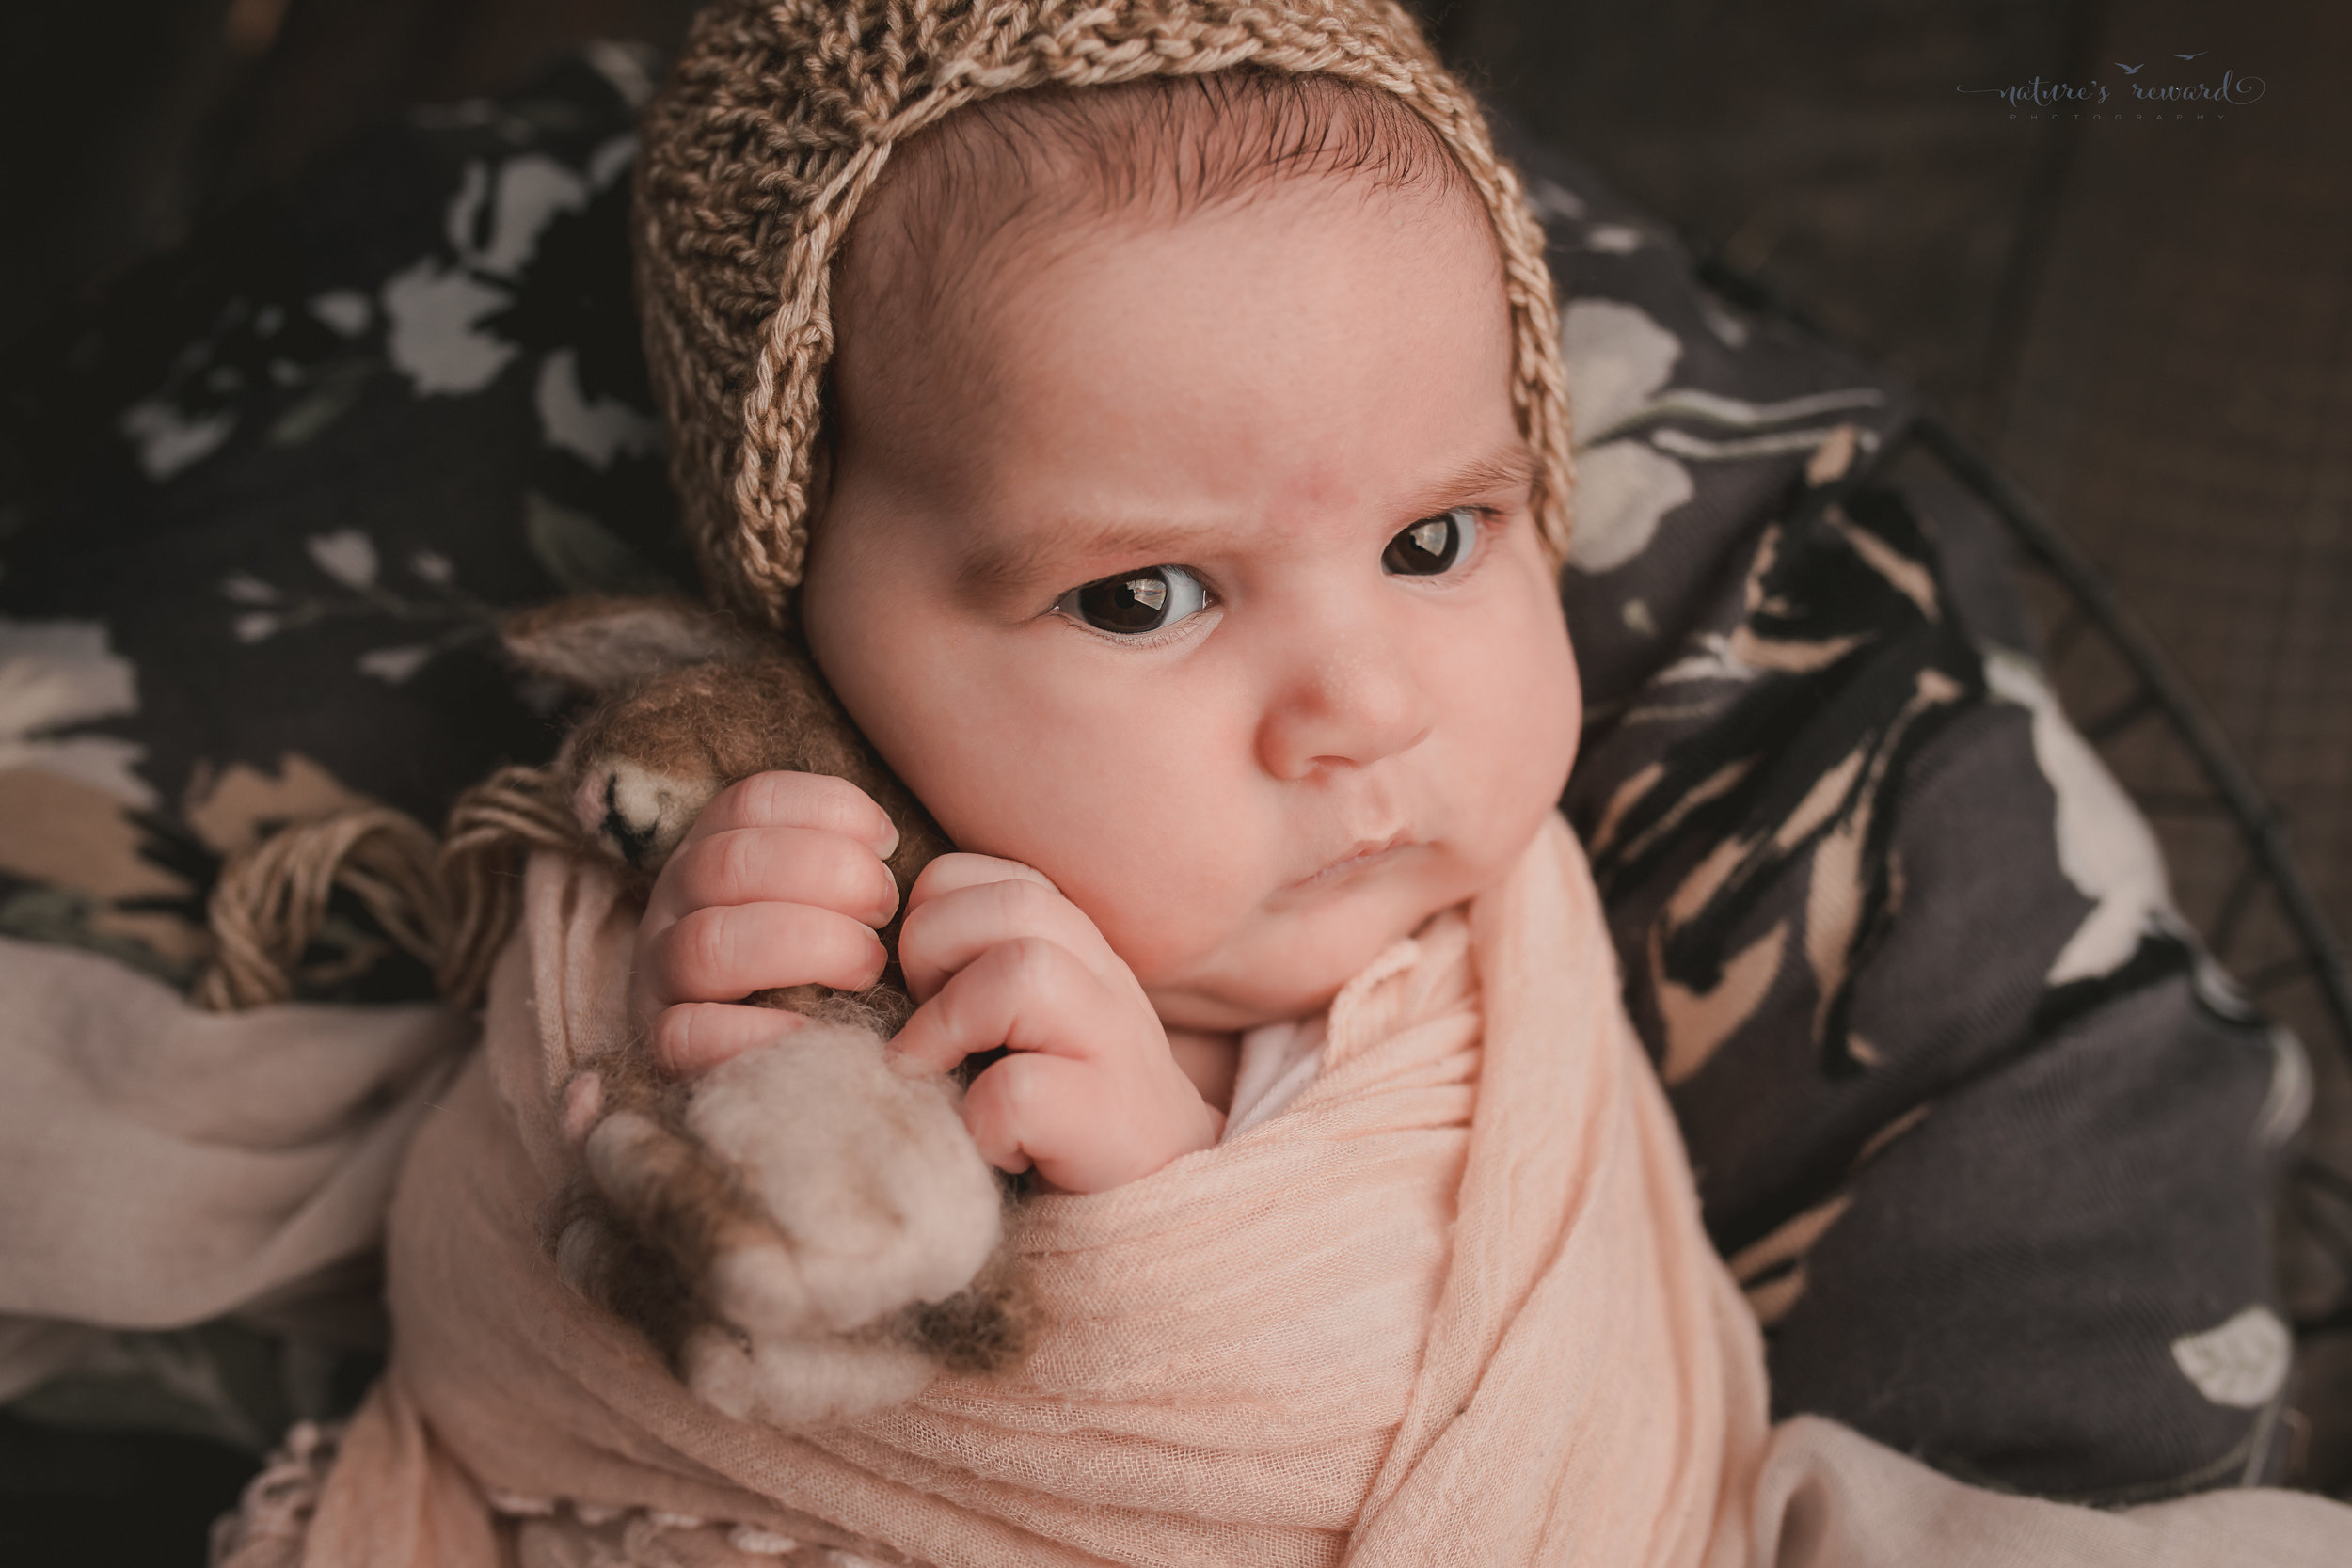 Holding a bunny and not willing to share- swaddled in lace and laying on grey floral on a wood floor, a newborn portrait by Nature's Reward Photography